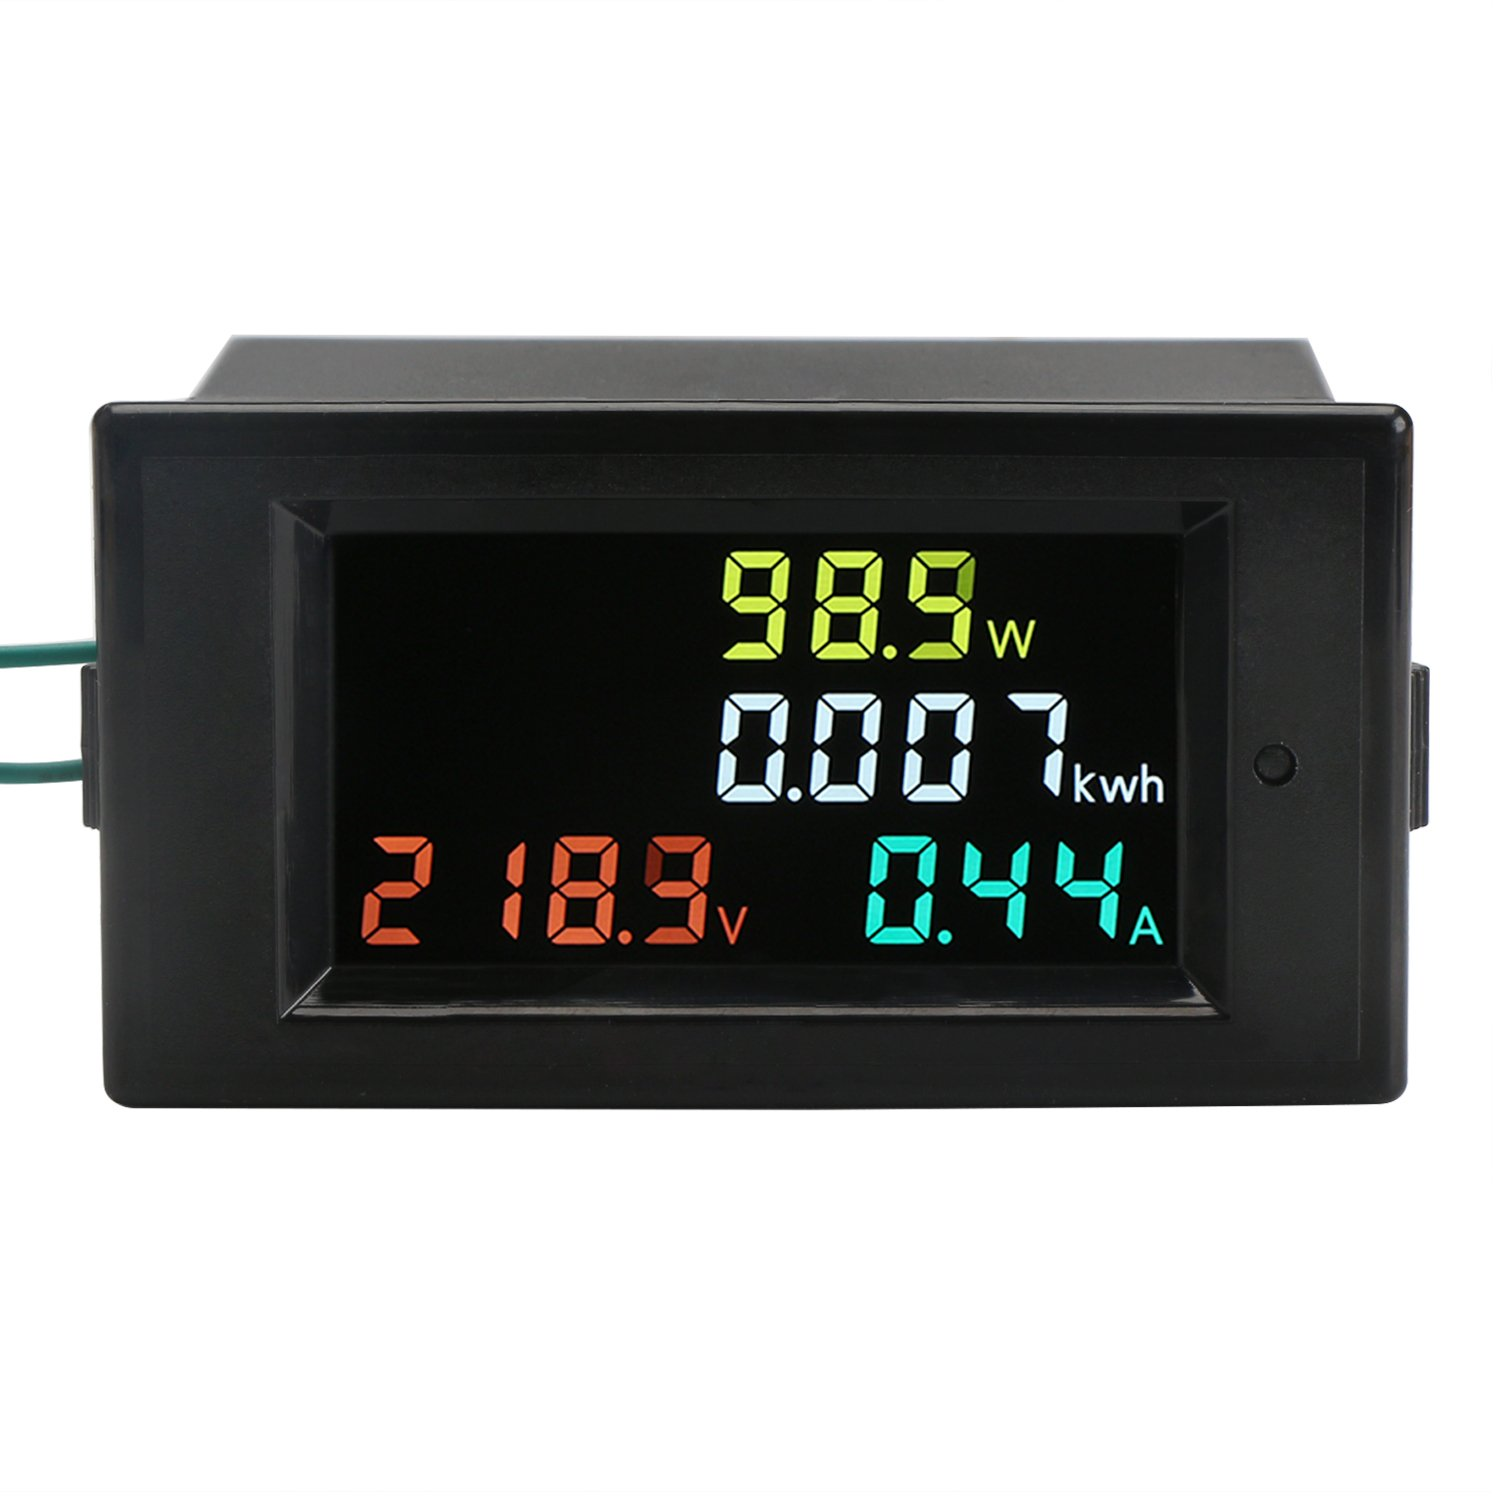 Ac Power Meter Drok 80 300v 100a Voltage Current Color Lcd Wiring Diagram Usefulldatacom Ammeter Schematic And Display Panel Digital Voltmeter Watt Active Energy Monitor Multimeter Volt Amp